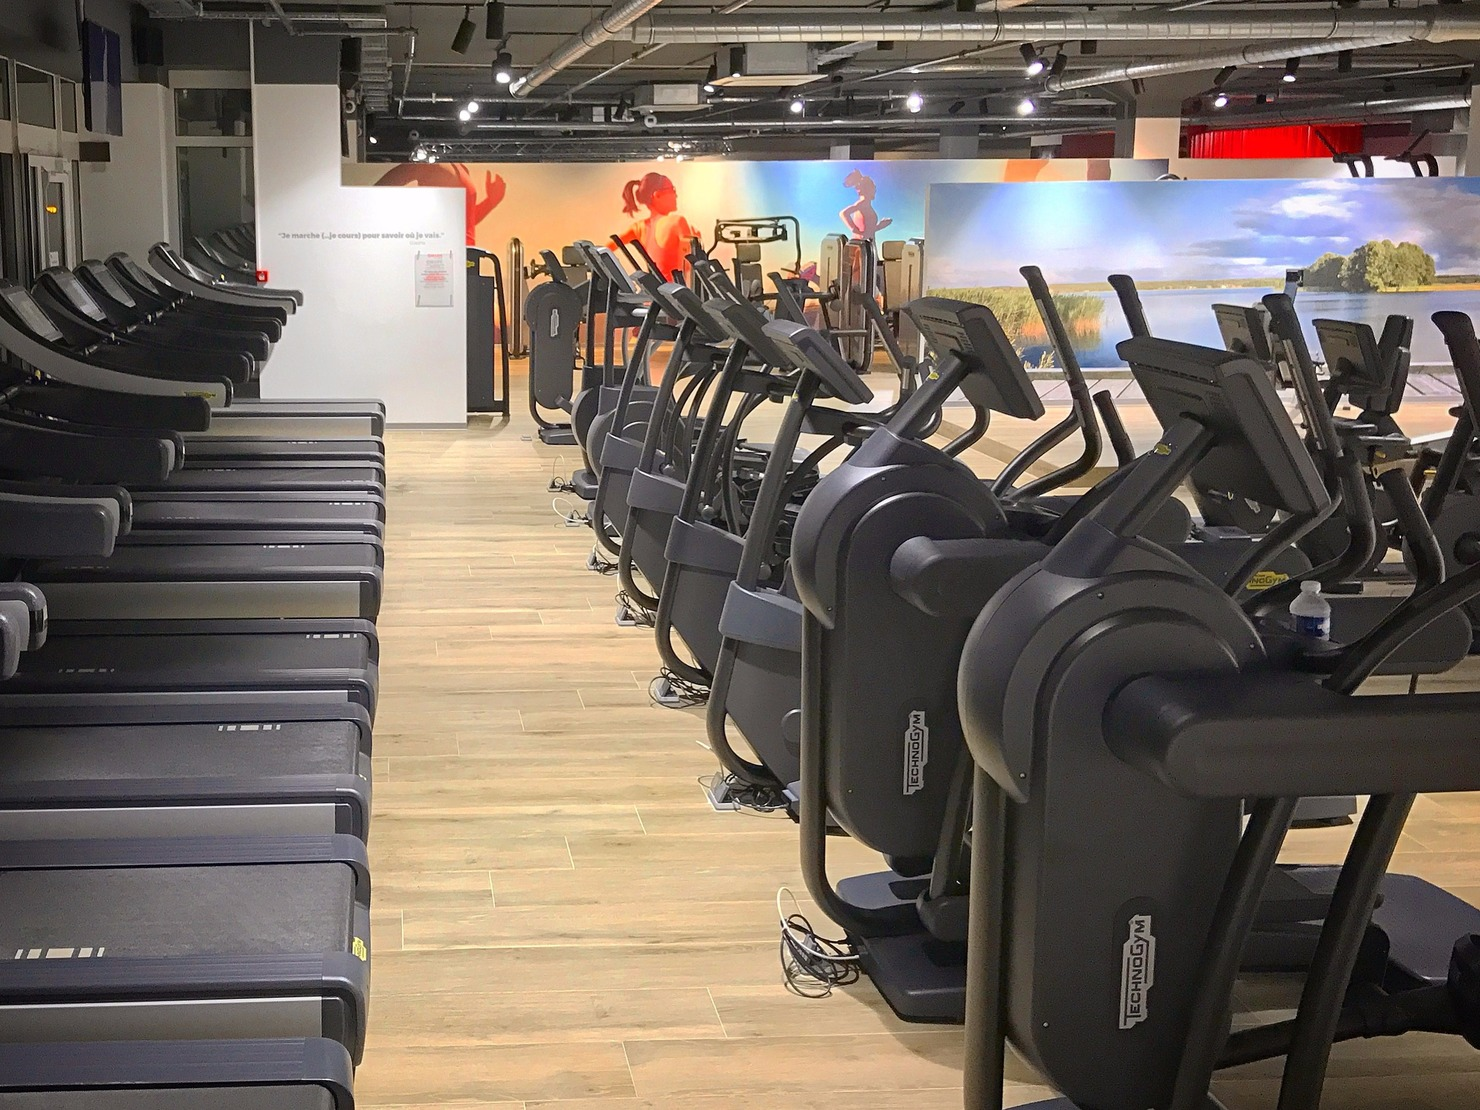 one fitness club villeneuve loubet tarifs avis horaires essai gratuit. Black Bedroom Furniture Sets. Home Design Ideas